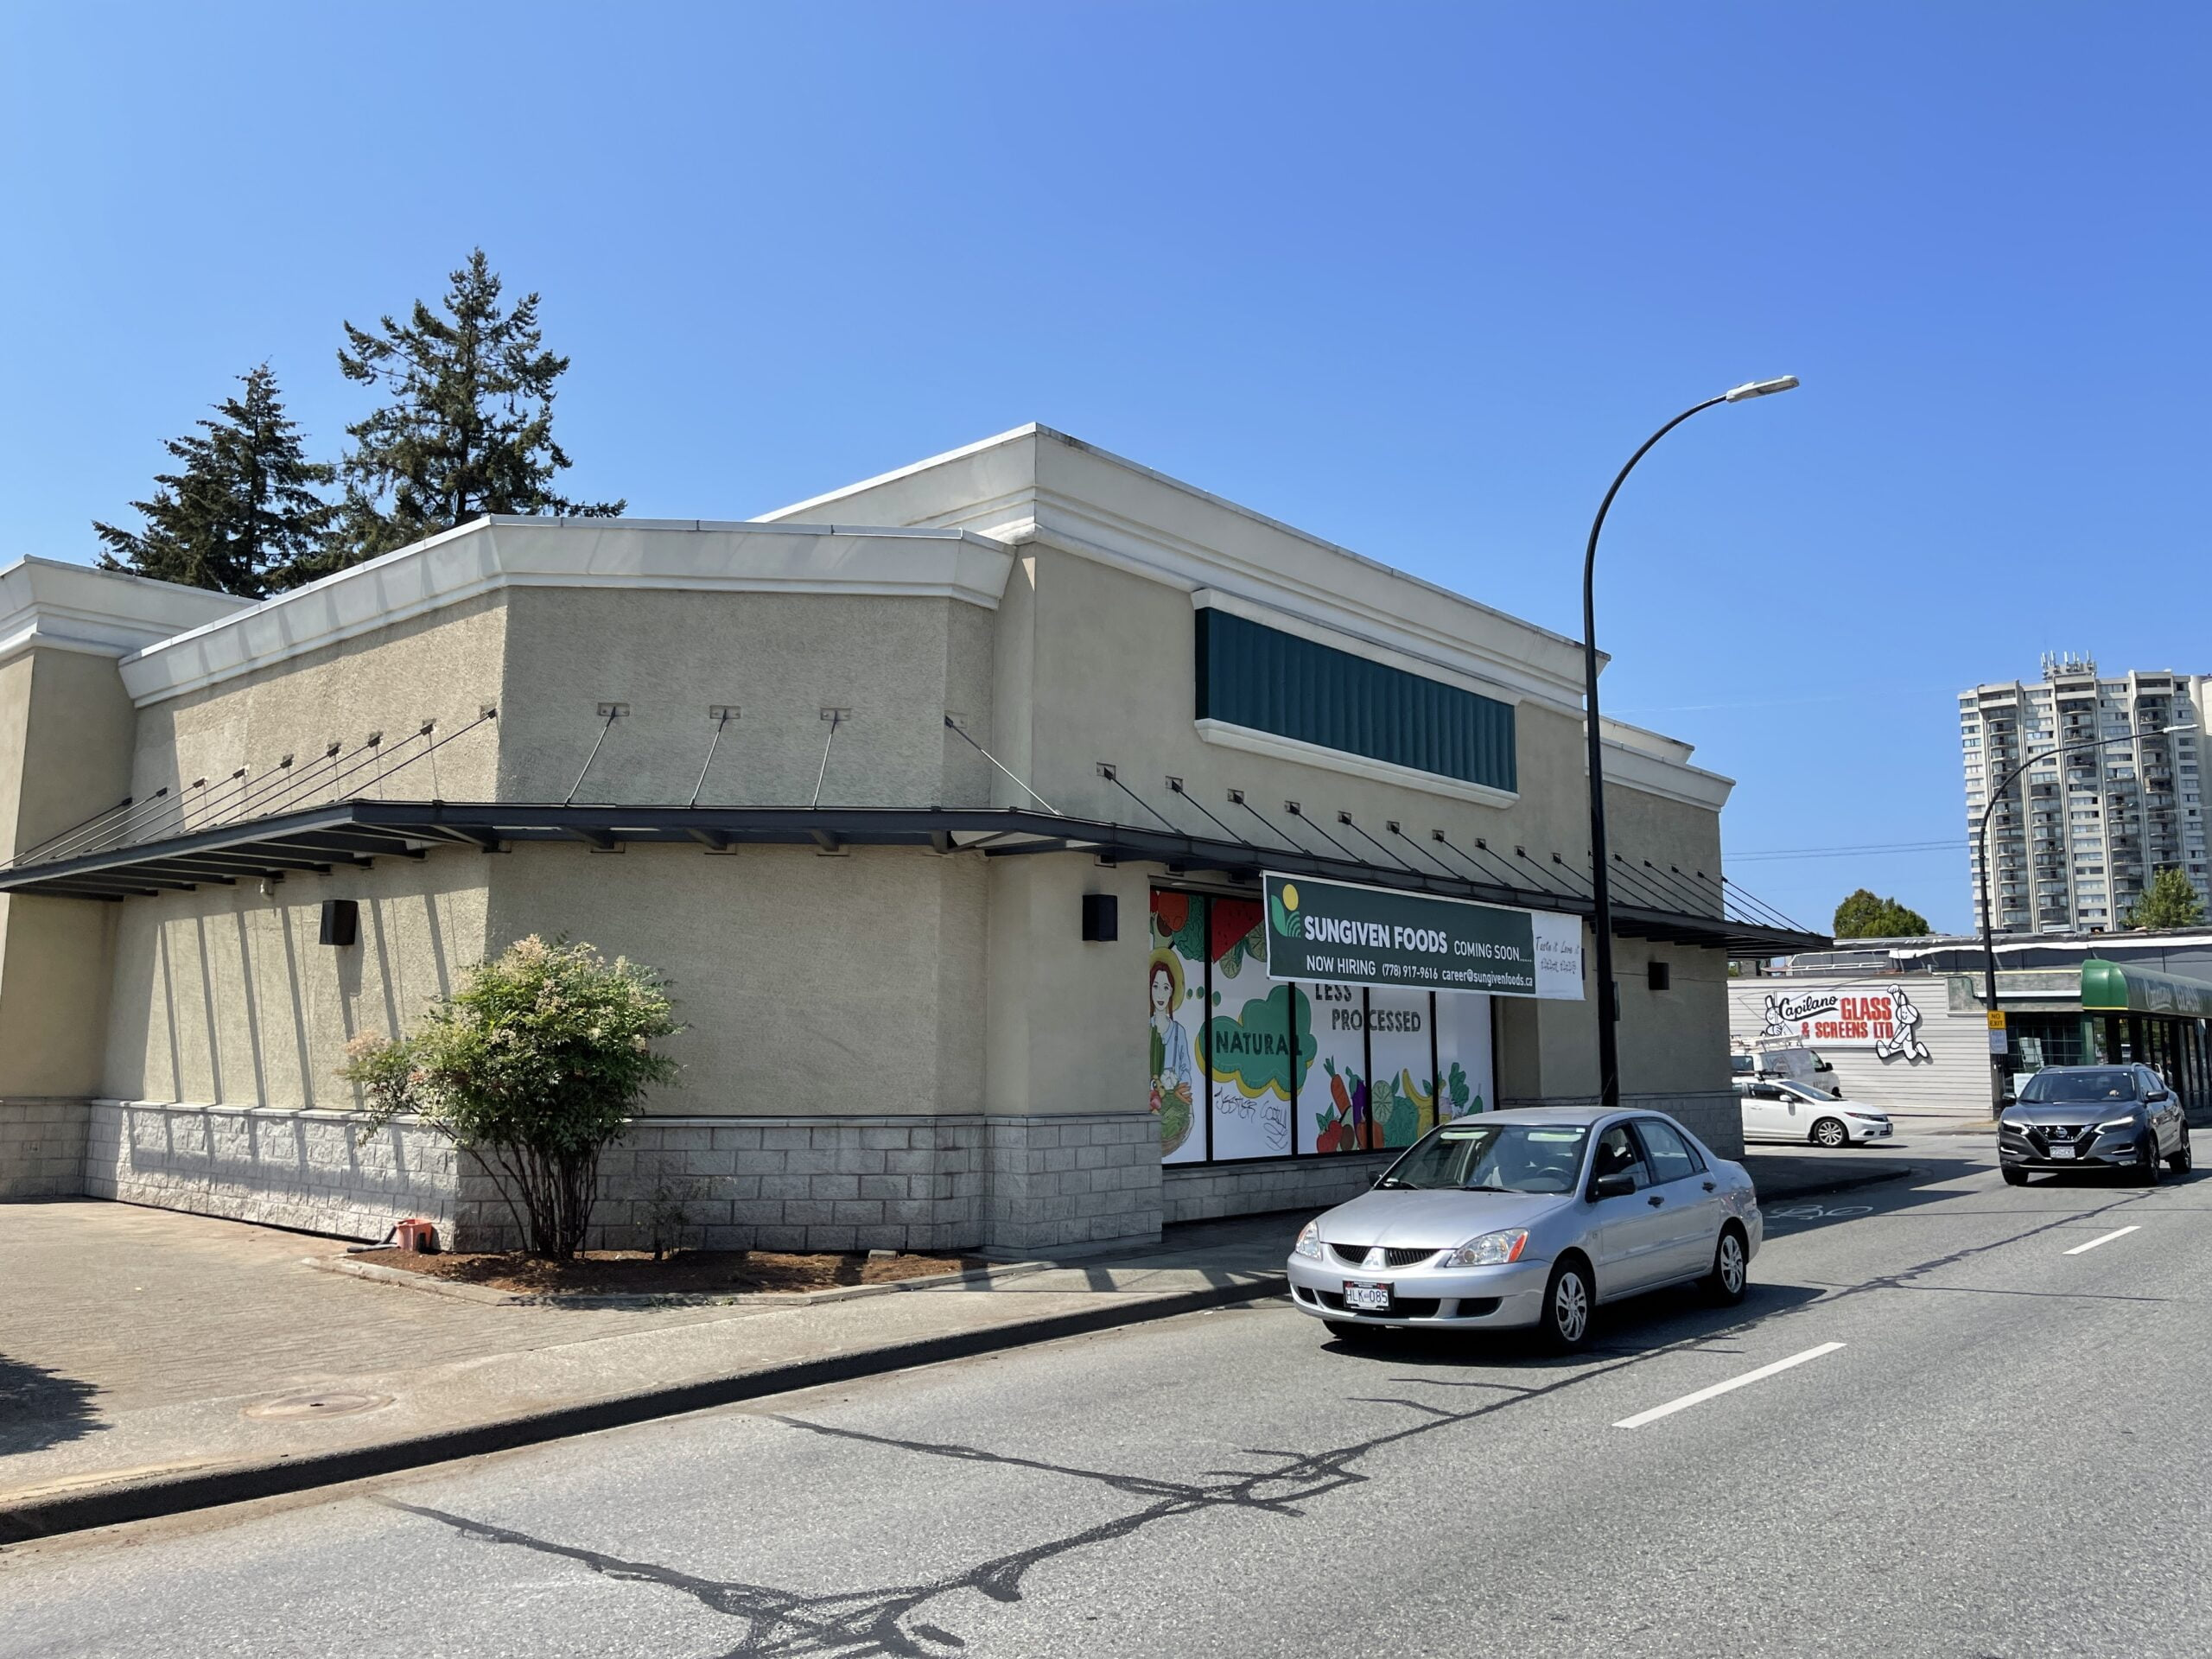 Future Sungiven location under construction in North Vancouver (July 2021)